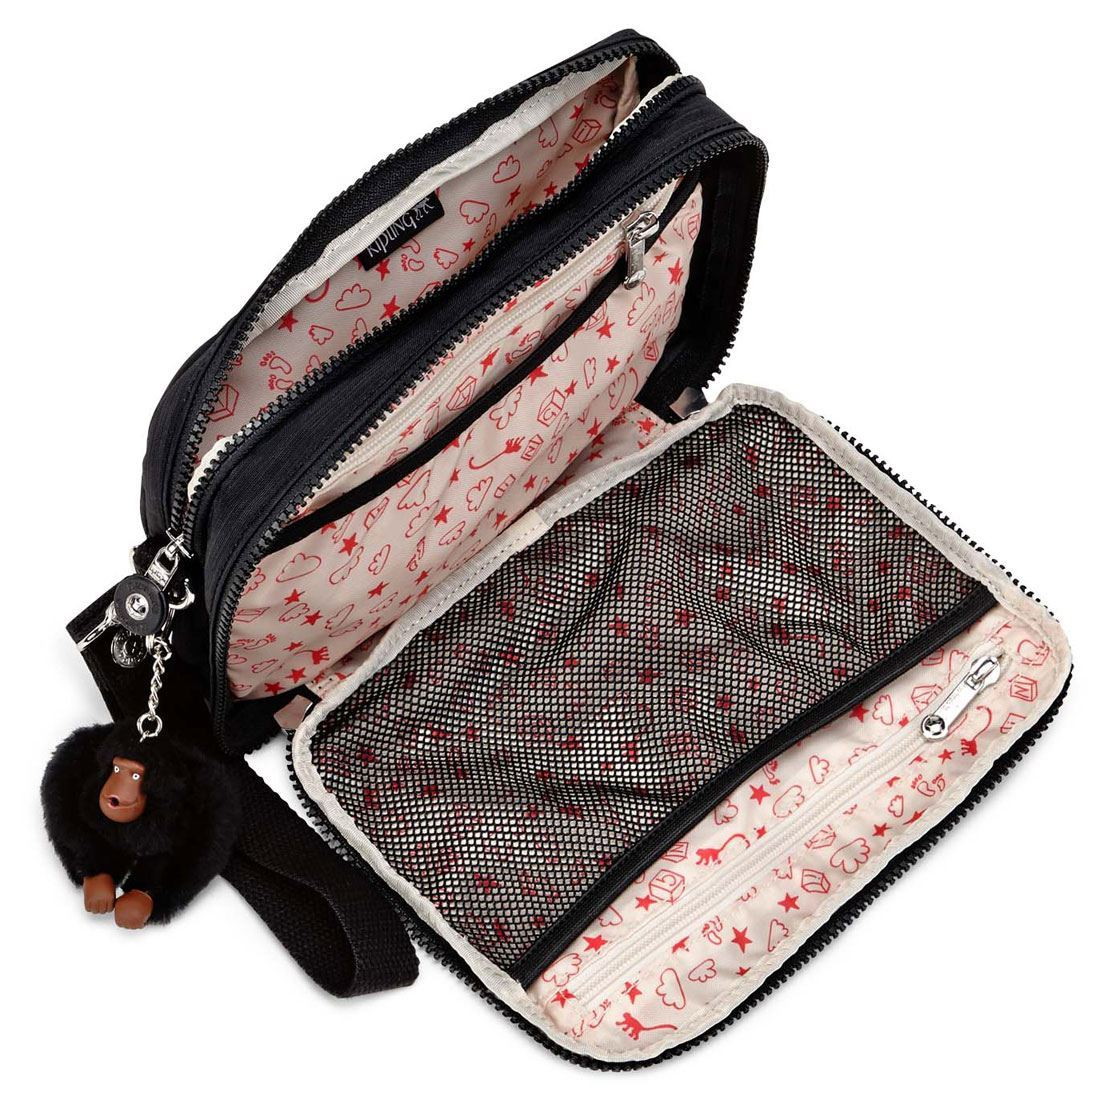 Kipling Donnica Baby Changing Bag Insert With Changing Mat